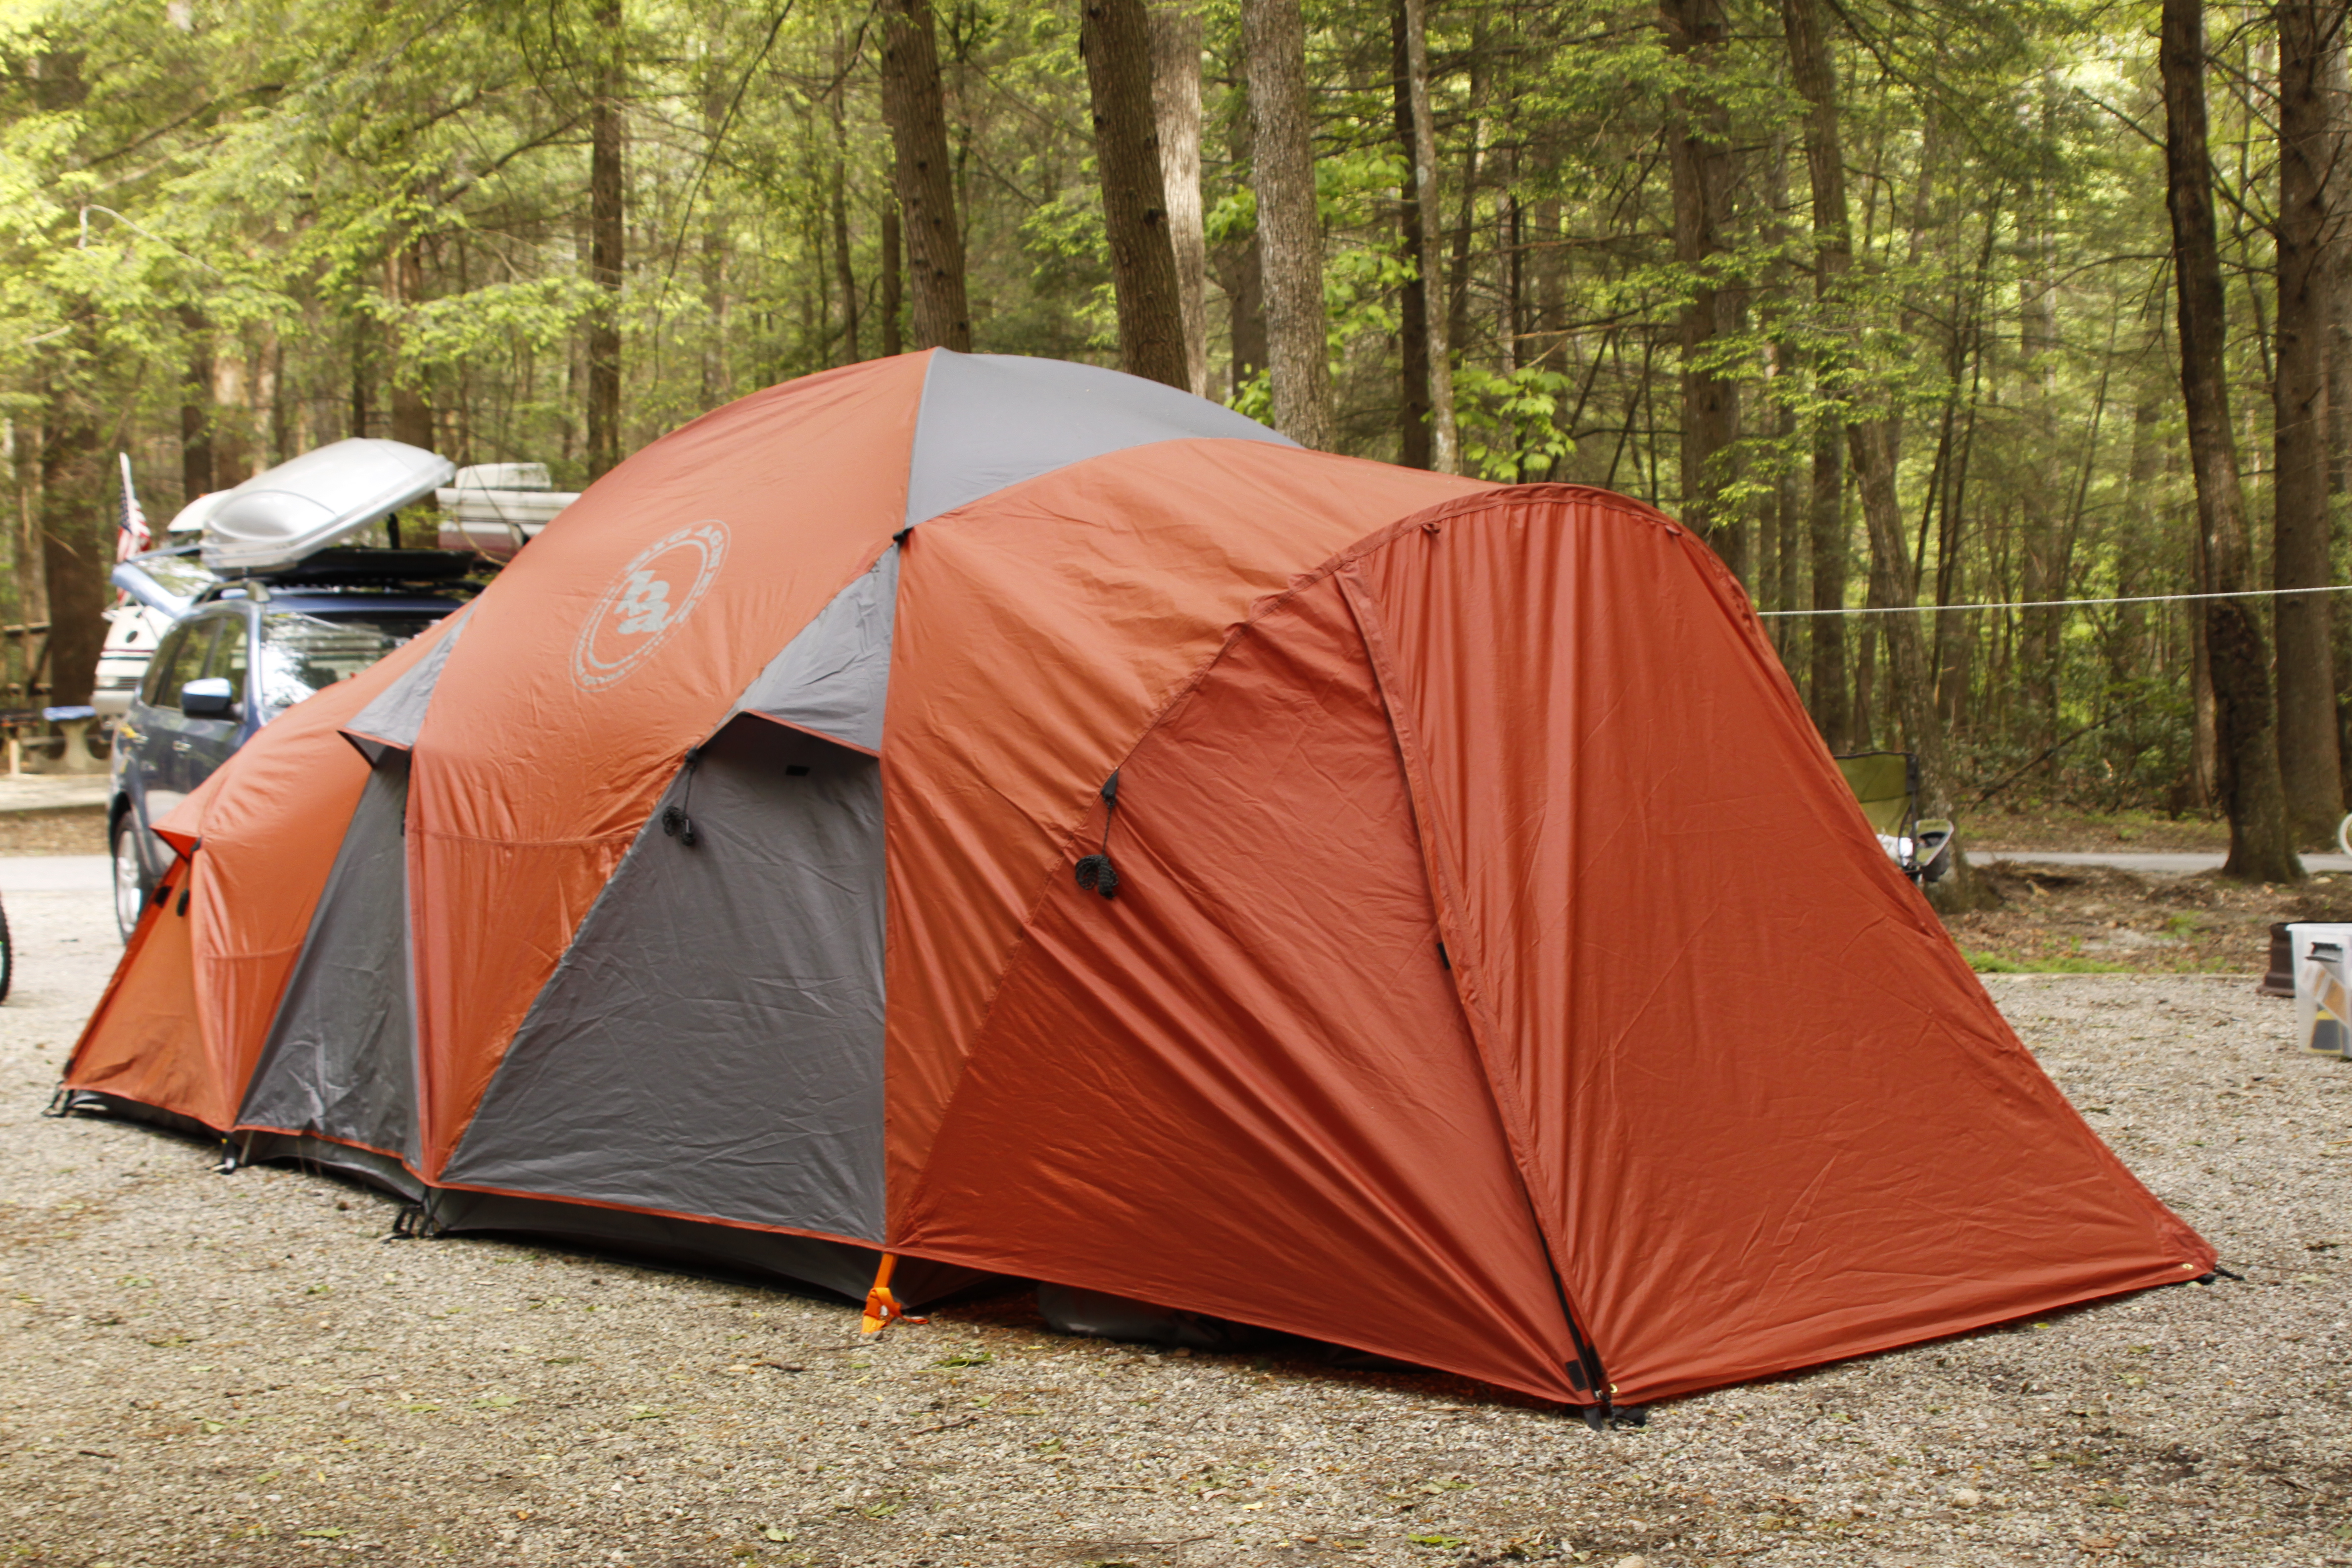 Home Sweet Home The Big Agnes Flying Diamond 6 & Home Sweet Home: The Big Agnes Flying Diamond 6 -